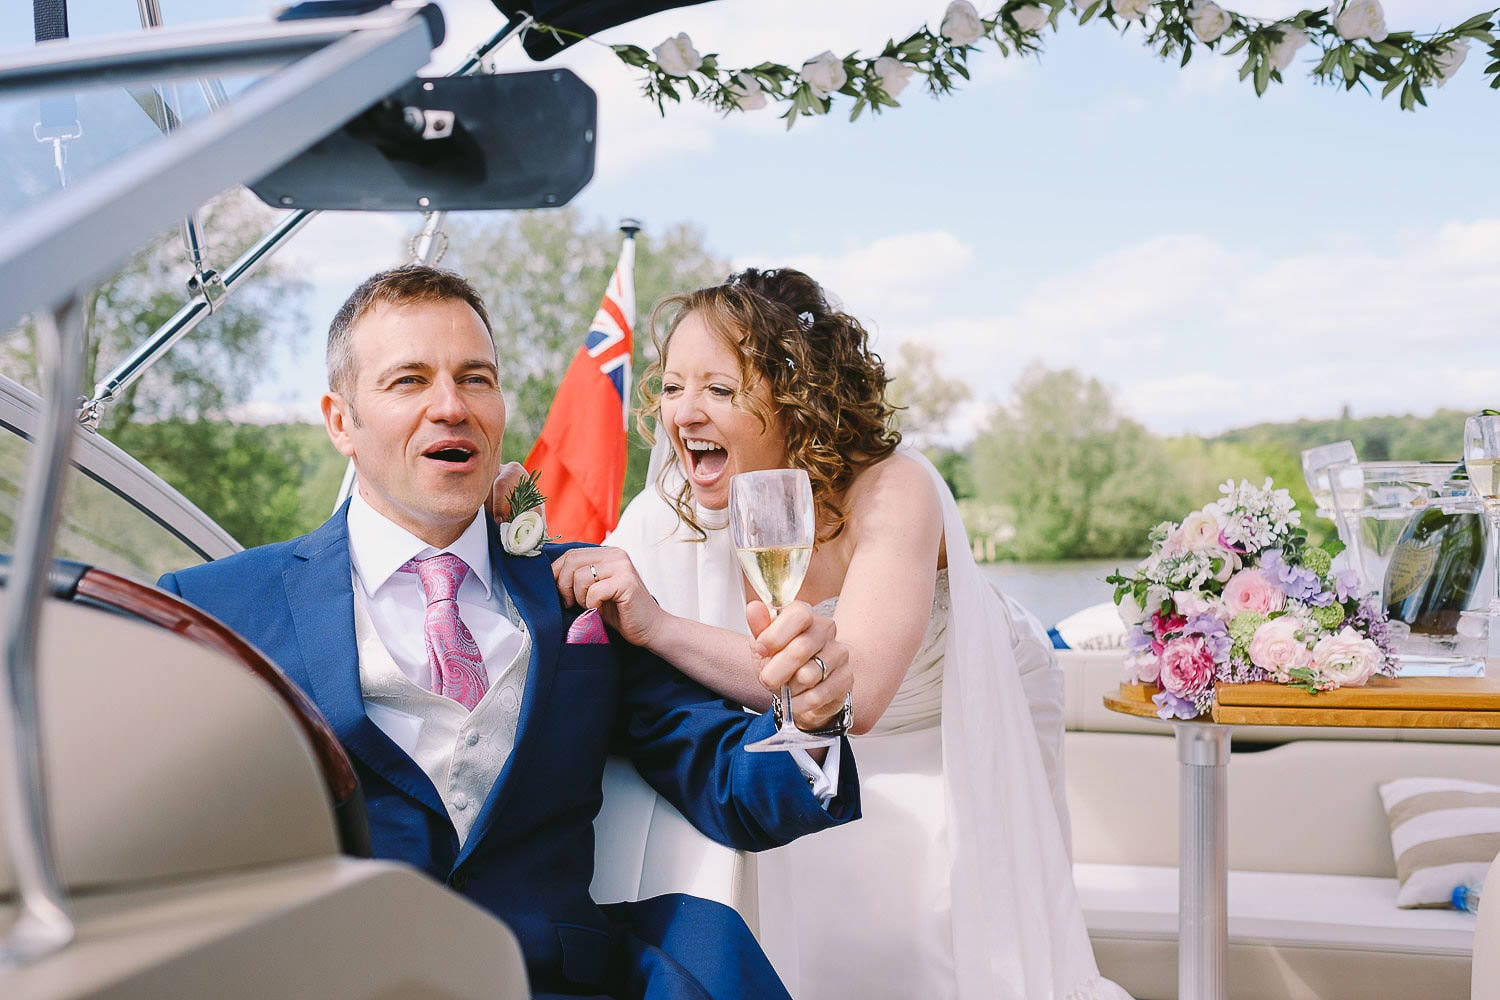 The bride and groom on a boat